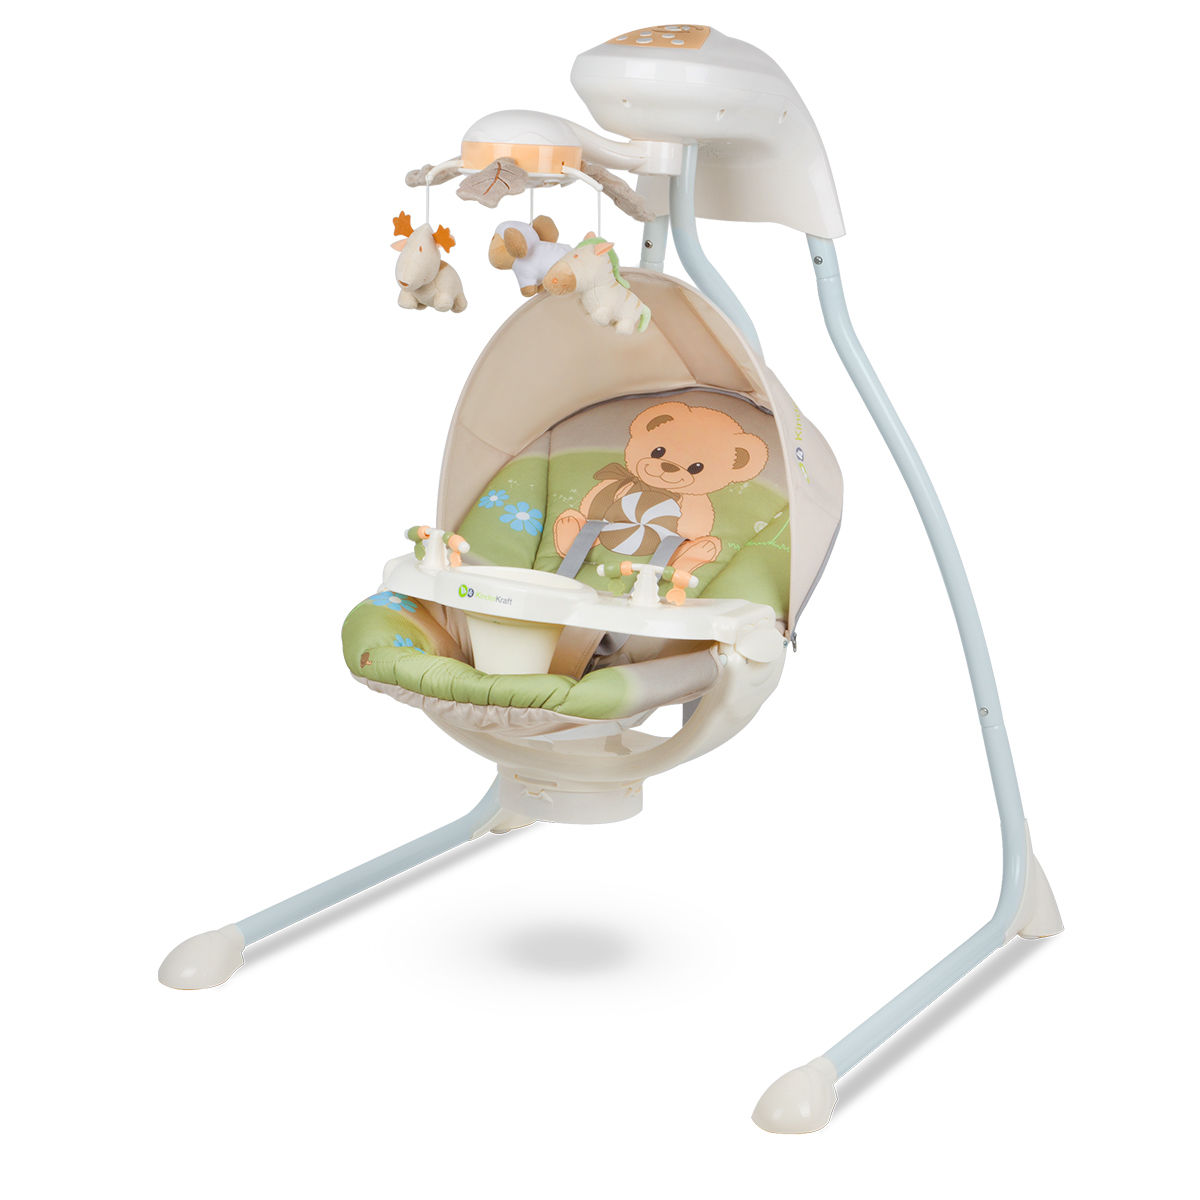 Kinderkraft teddy bear baby bouncing chair swing seat for Cuisine kinderkraft